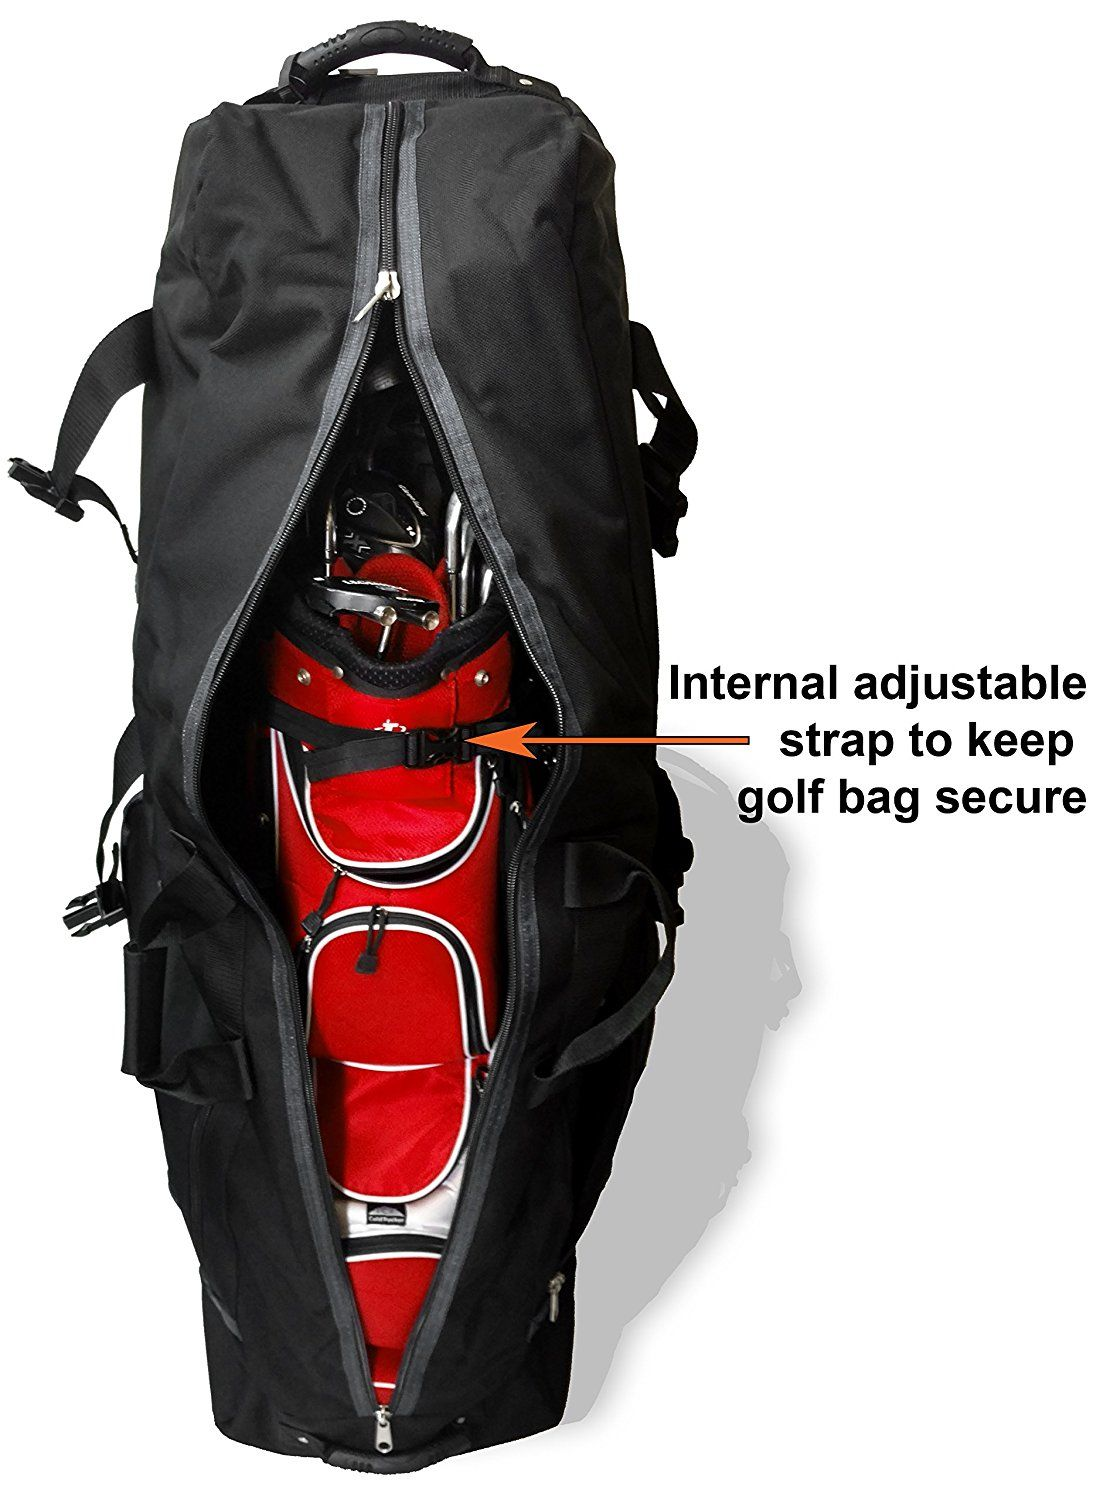 20++ Amazon golf bag travel cover ideas in 2021